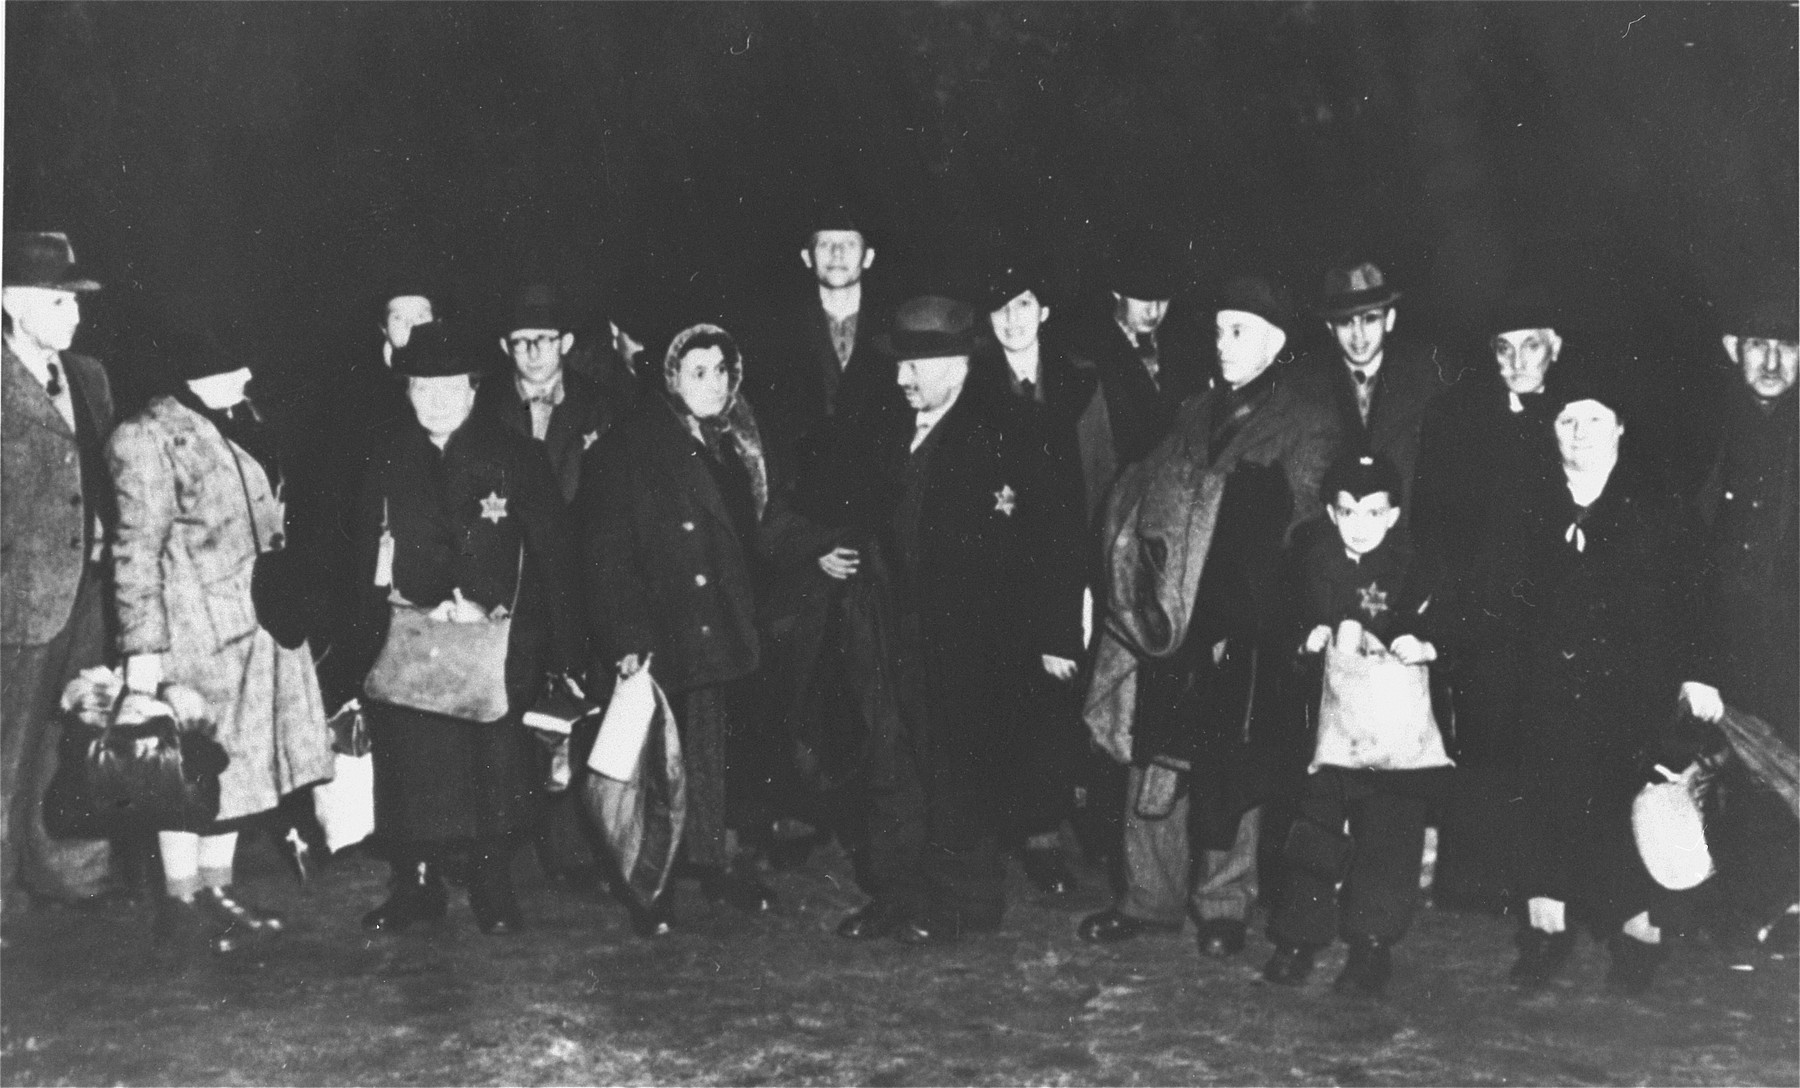 German Jews from the town of Coesfeld are assembled for deportation to Riga, Latvia.